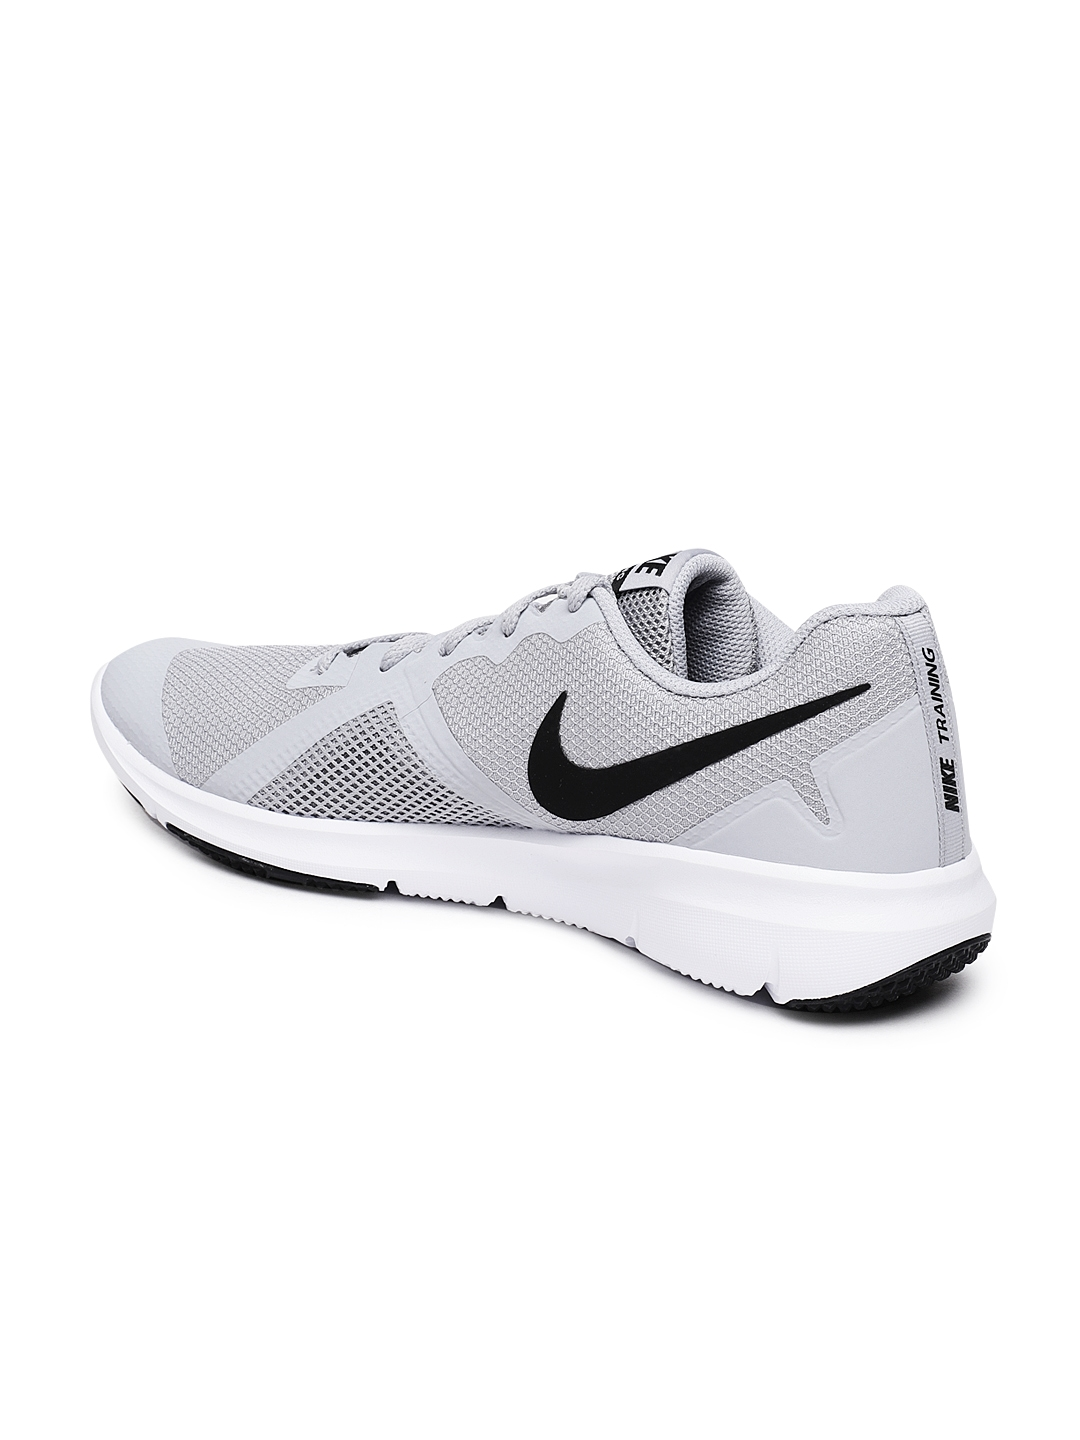 101863d65318 Buy Nike Men Grey Flex Control II Training Shoes - Sports Shoes for ...